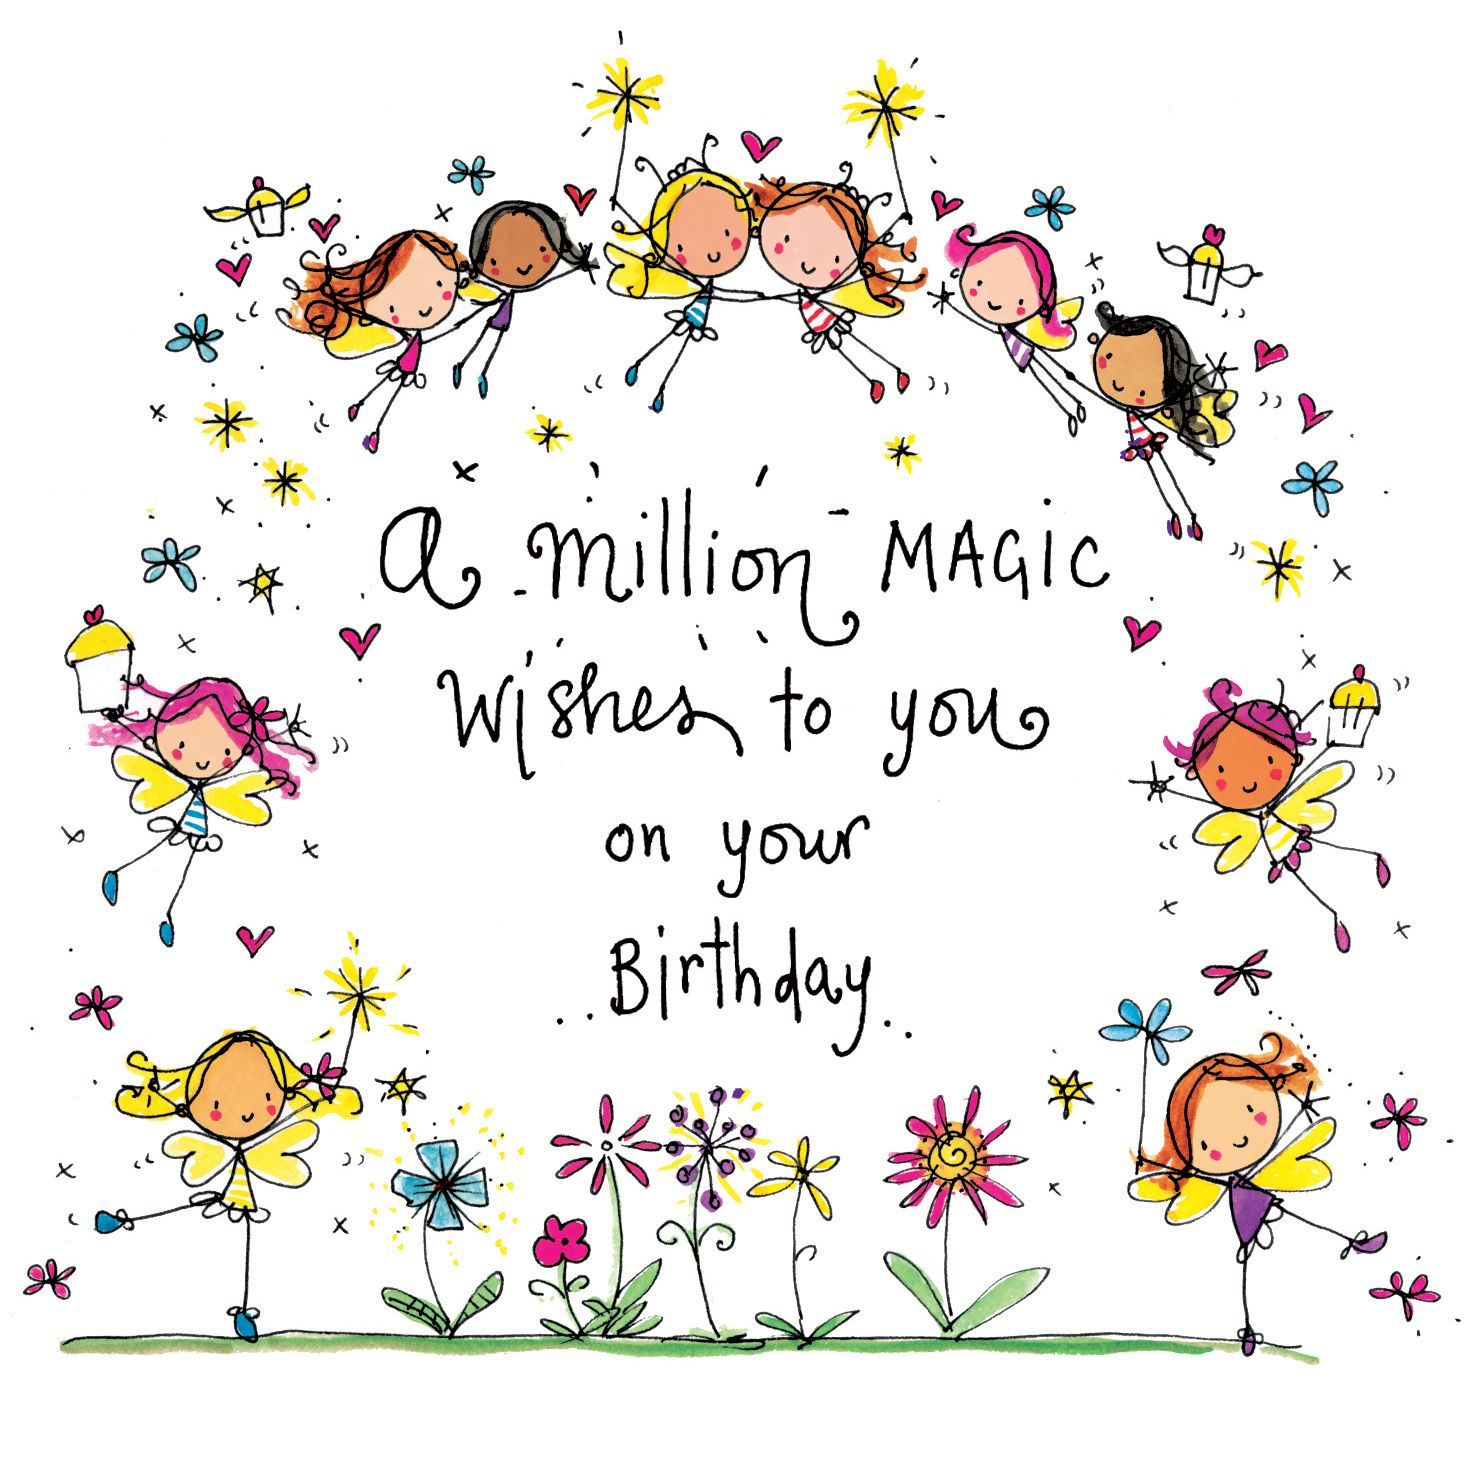 Iiiii a million magic wishes to you on your birthday birthday happy birthday messages kristyandbryce Image collections